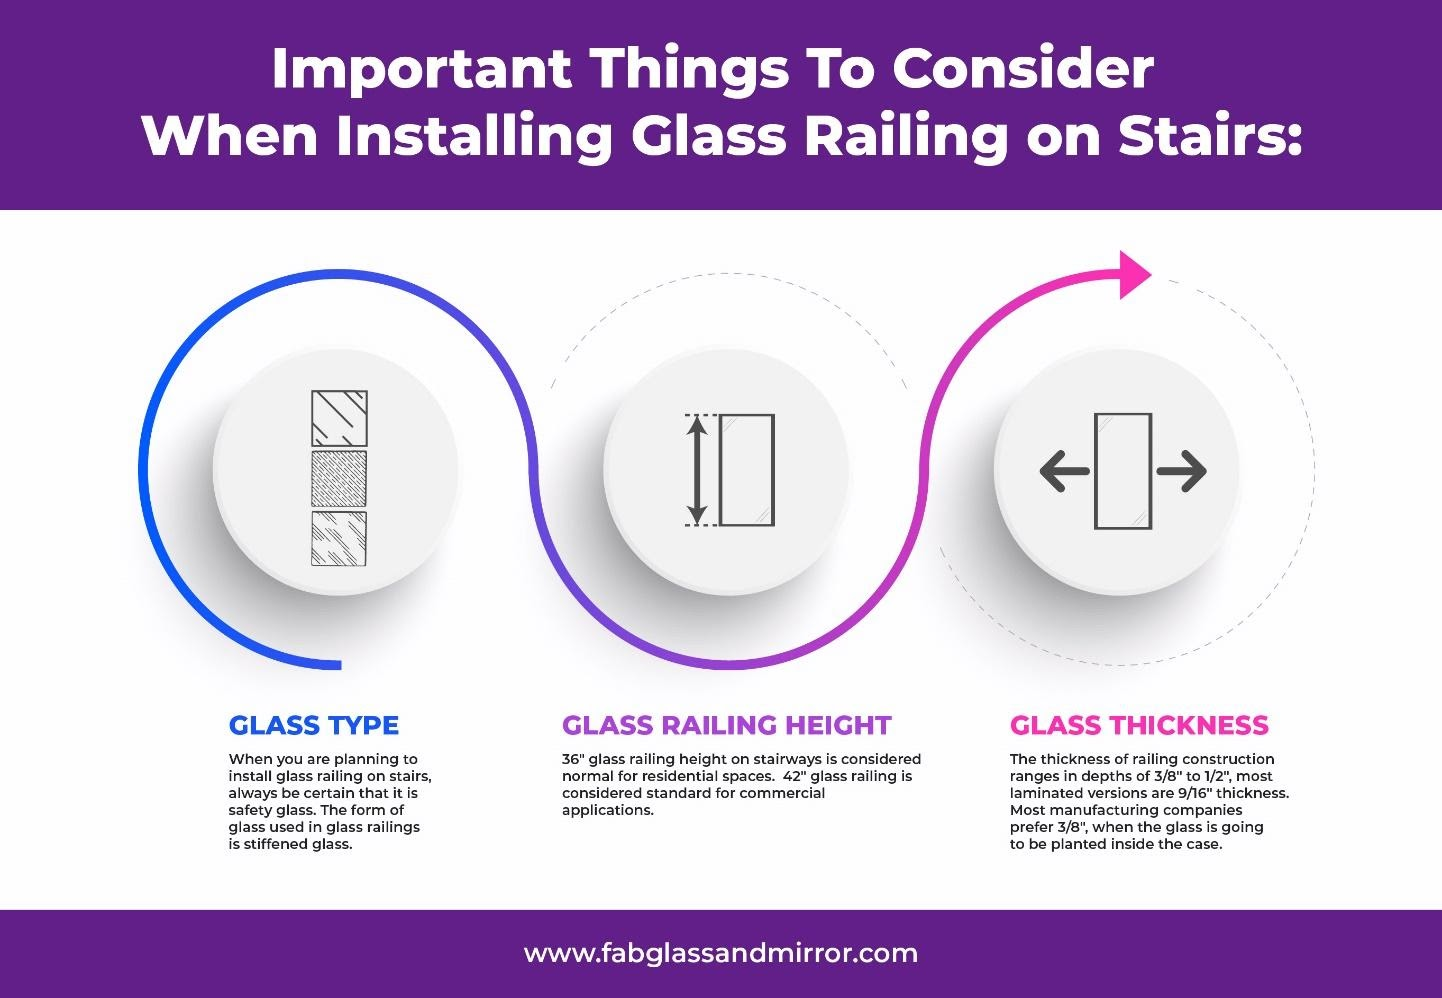 Things to consider when installing glass railing